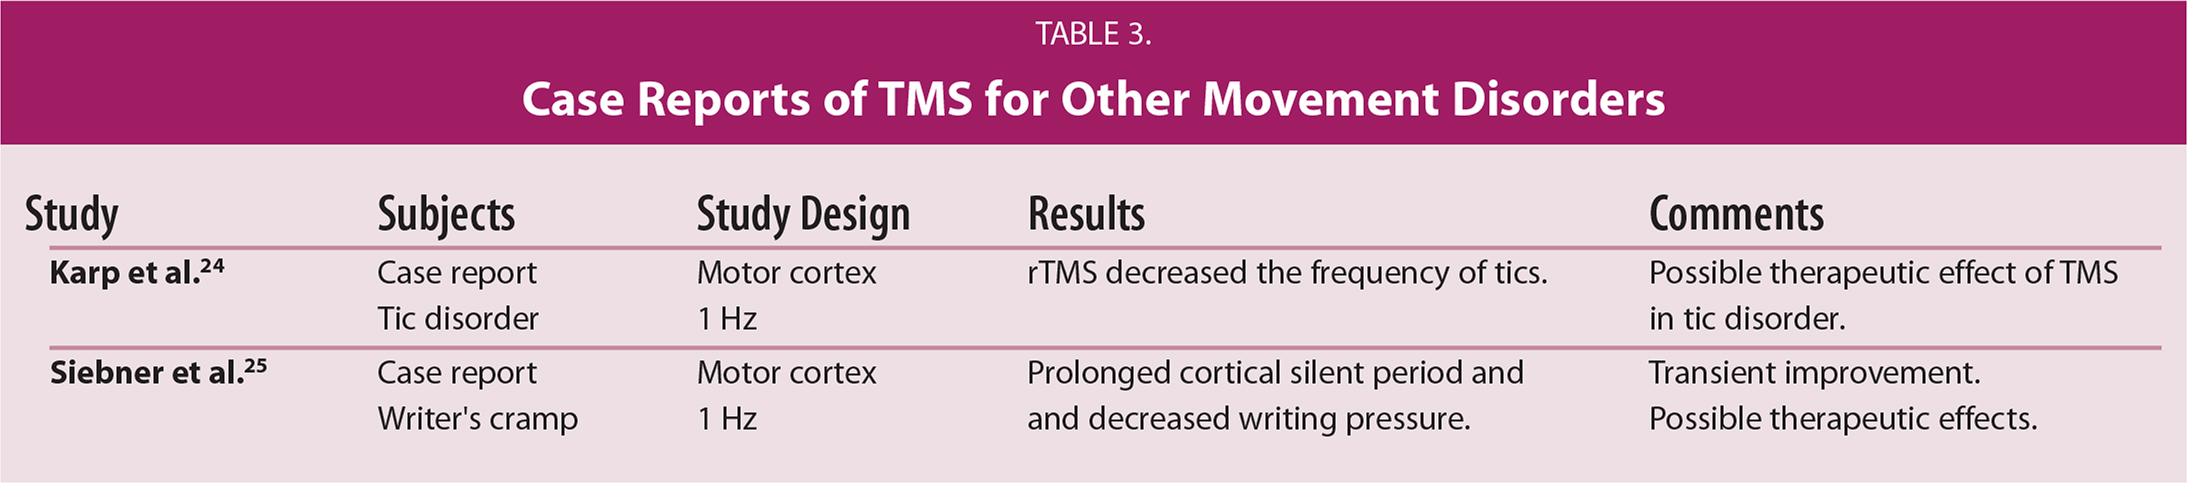 Case Reports of TMS for Other Movement Disorders